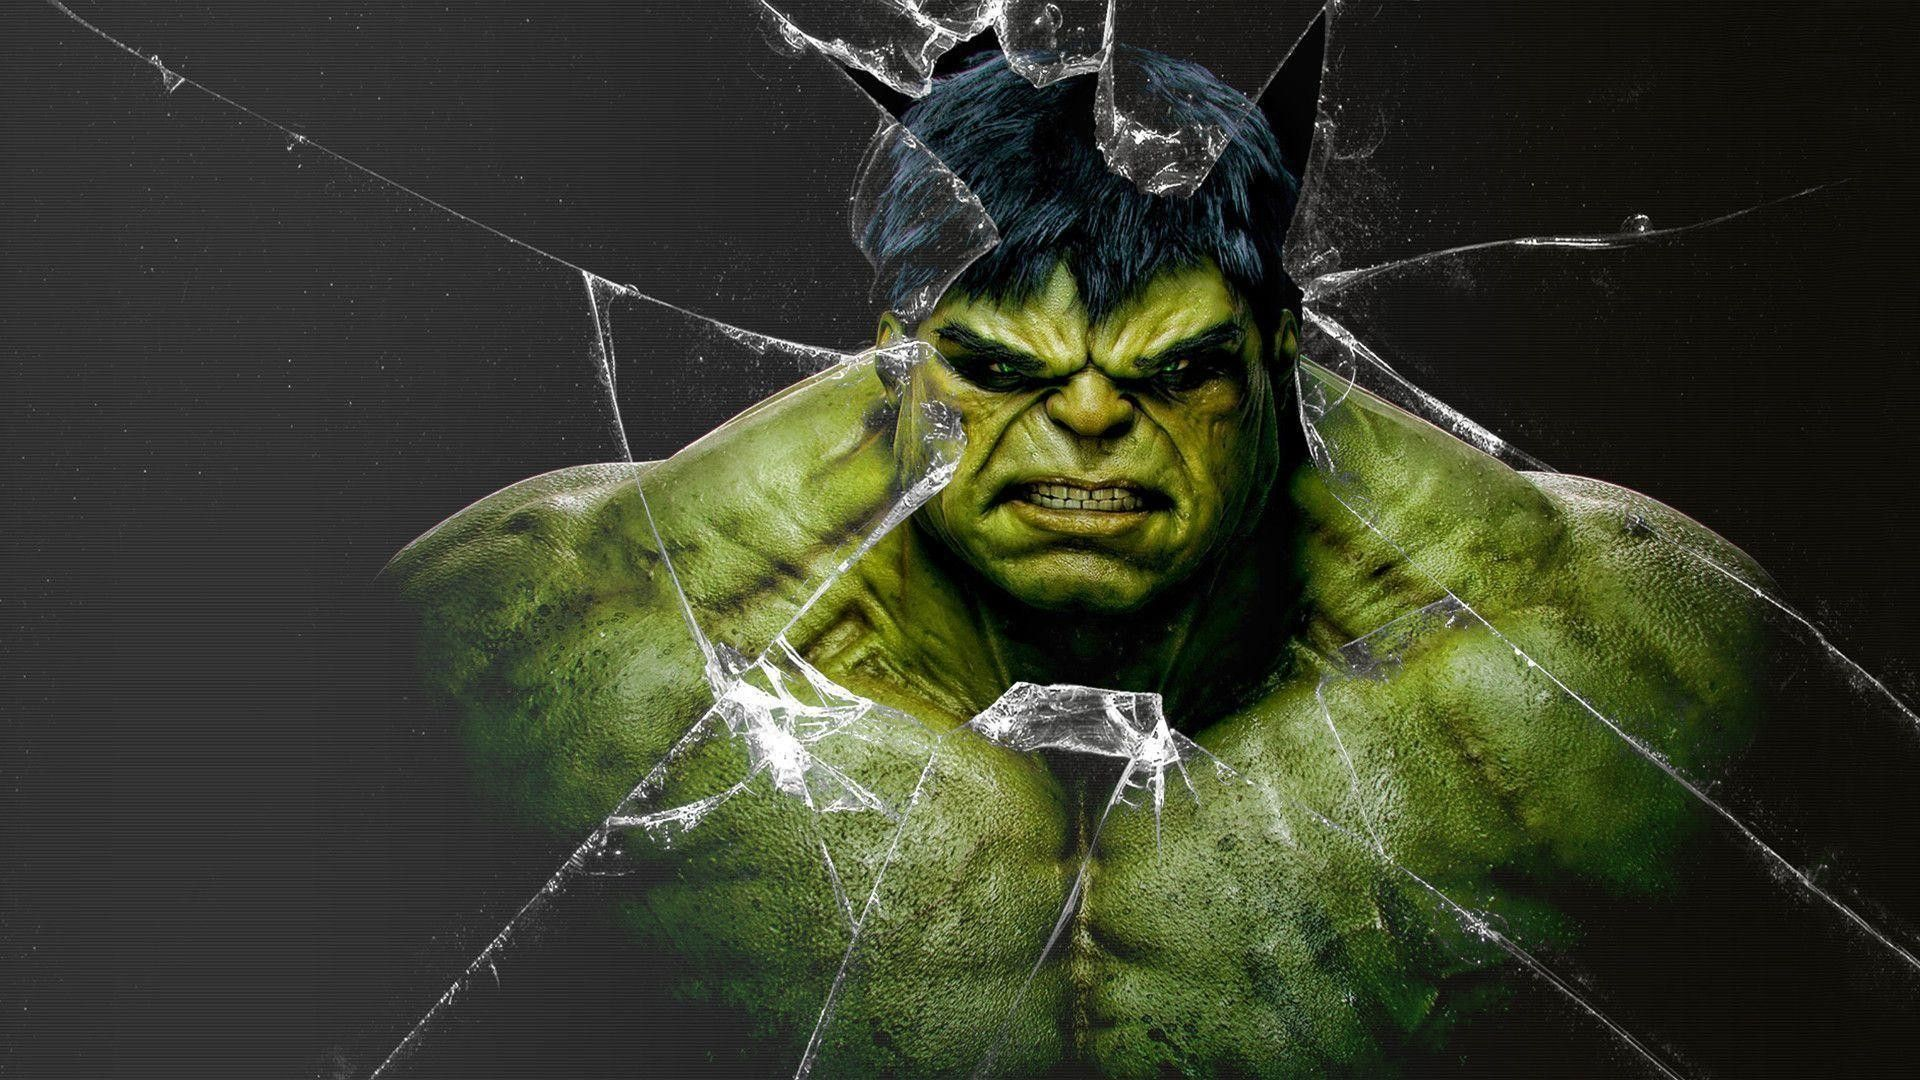 Hd Hulk Desktop Wallpapers Top Free Hd Hulk Desktop Backgrounds